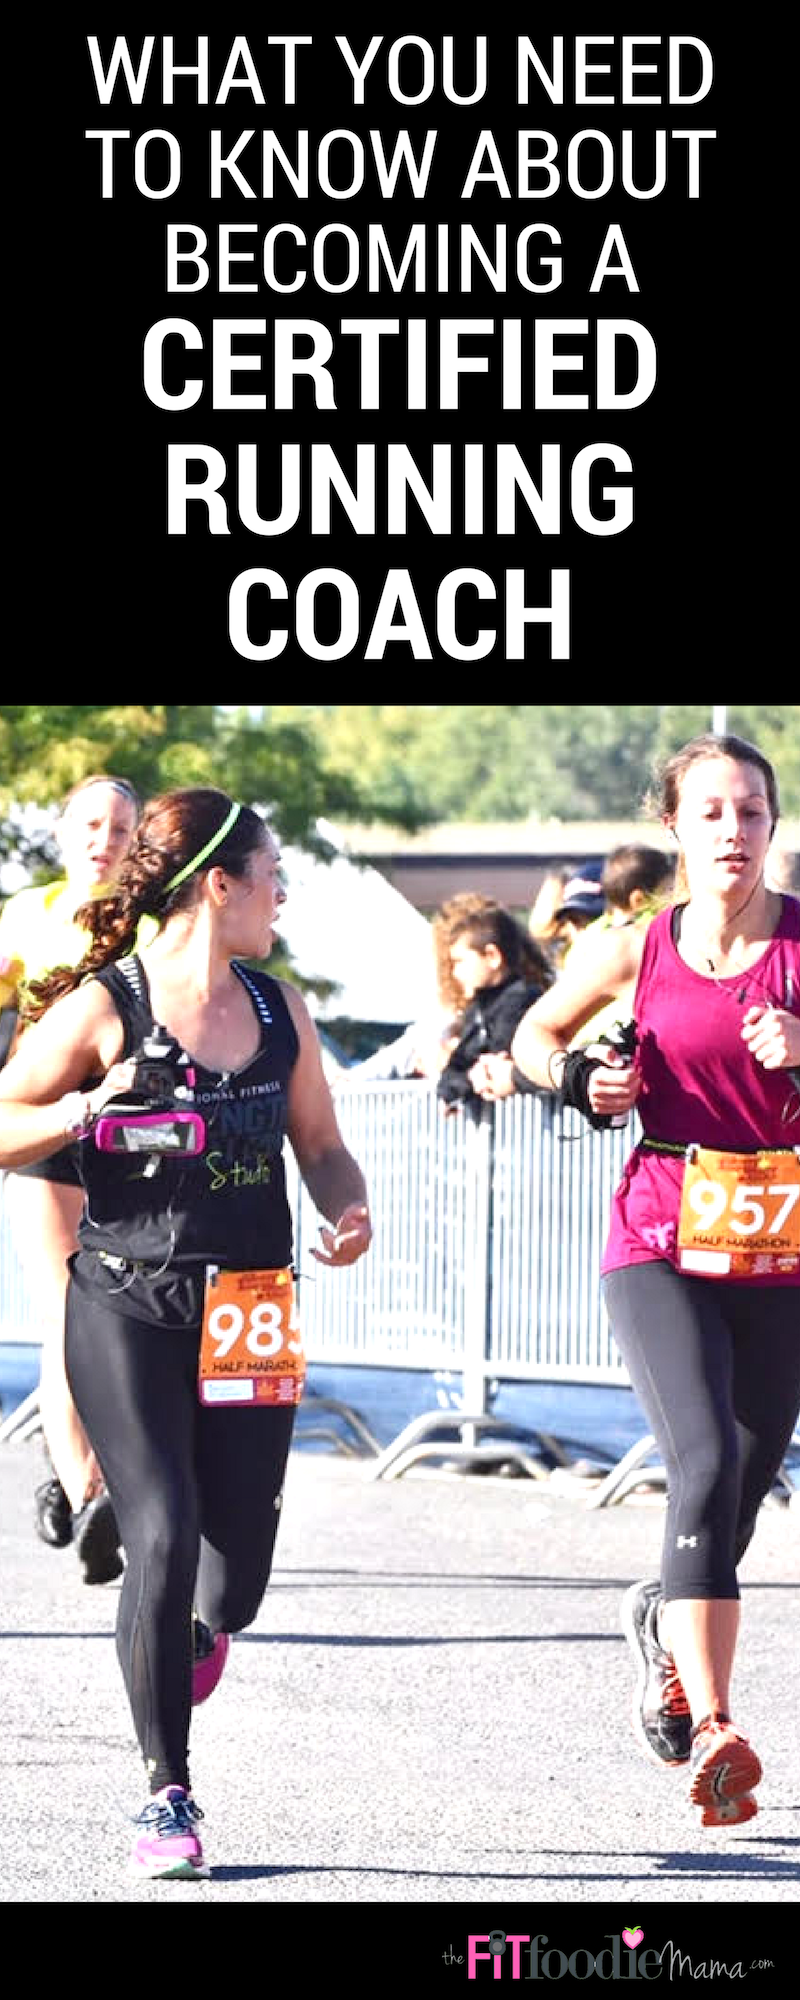 What You Need To Know About Becoming A Certified Running Coach The